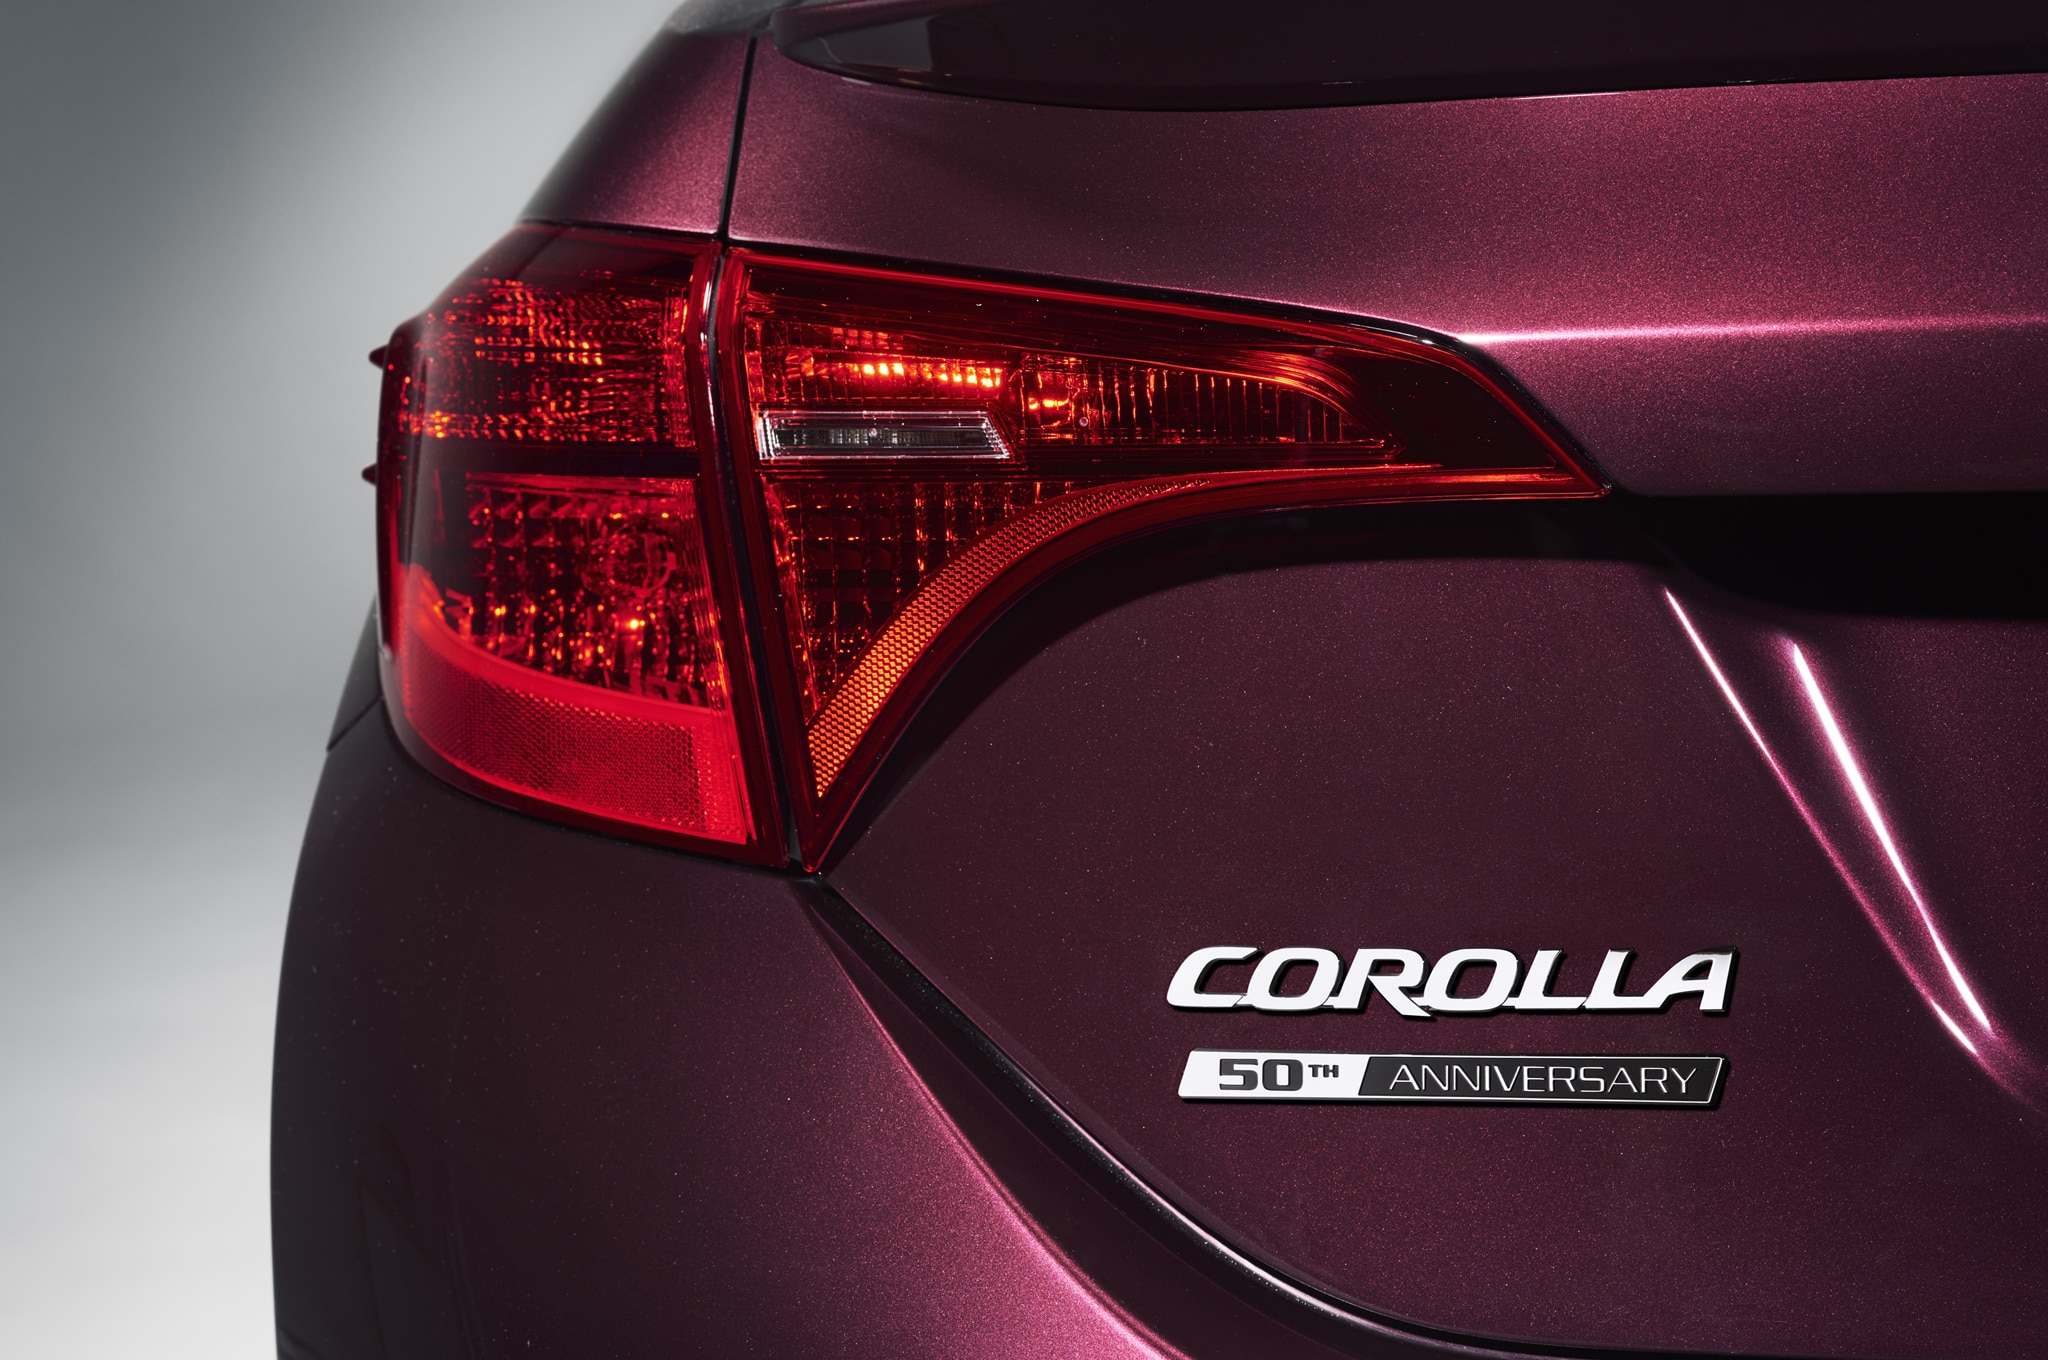 2017 Toyota Corolla 50th Anniversary Edition Debut In New